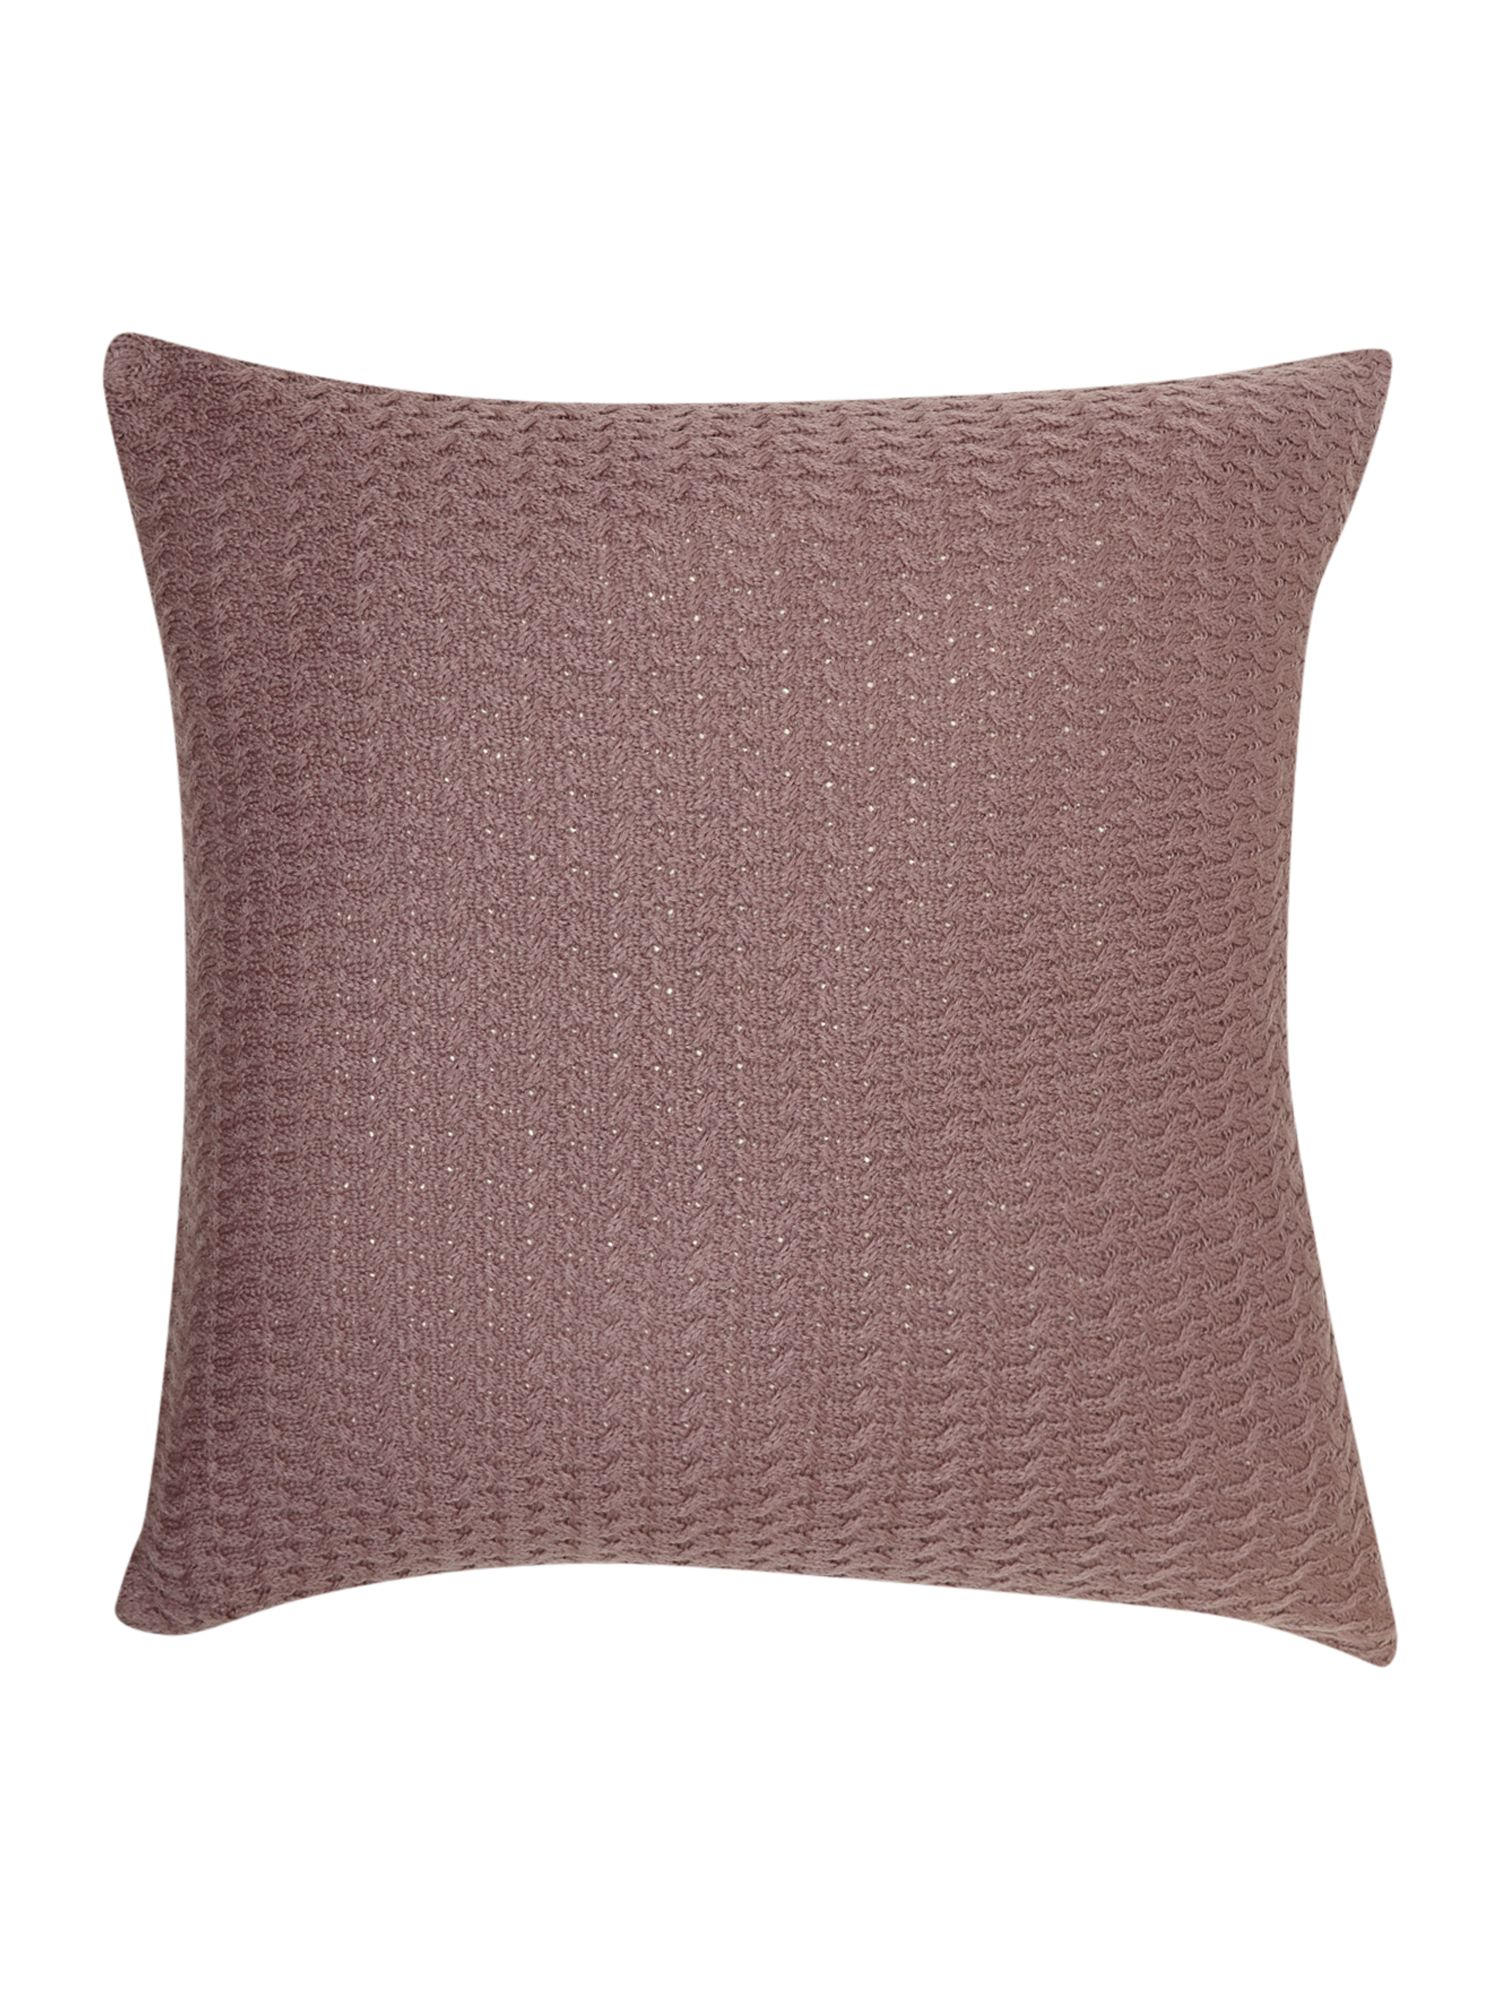 dickins jones d j diamond knit cushion purple. Black Bedroom Furniture Sets. Home Design Ideas